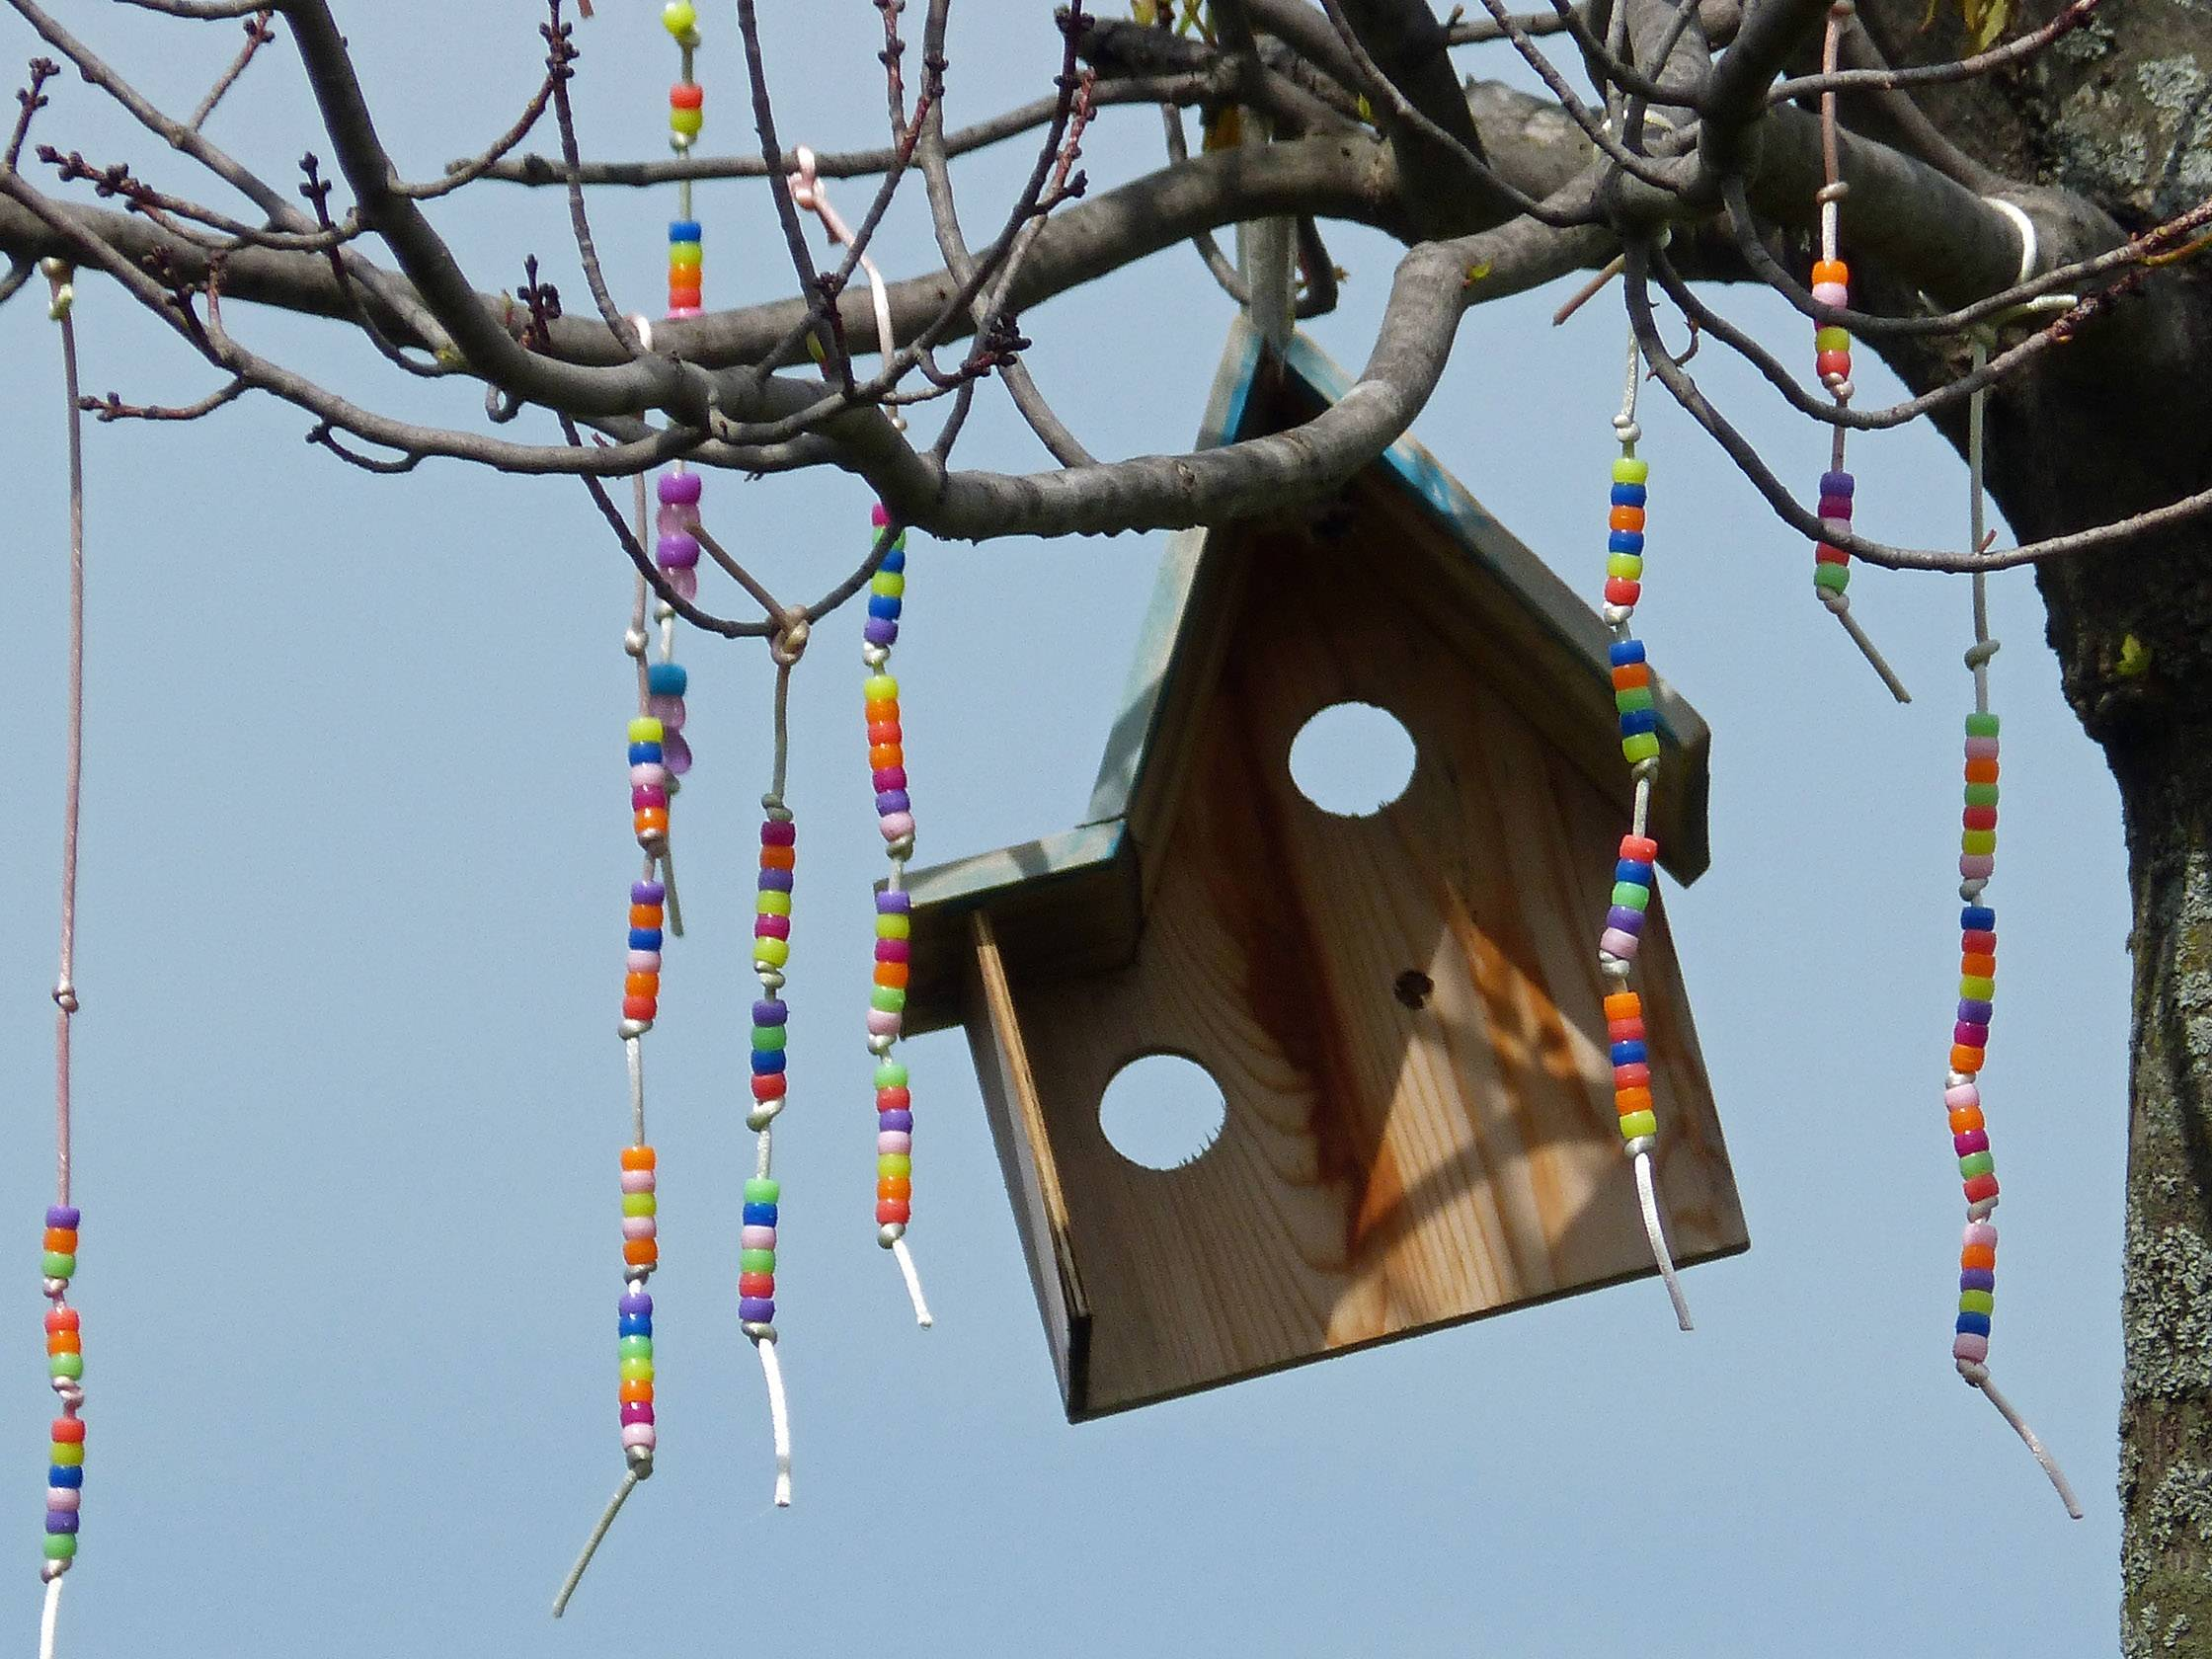 In a whimsical play of nature, a Wheeling naturalist hung a quaint birdhouse feeder amidst colorful beads.